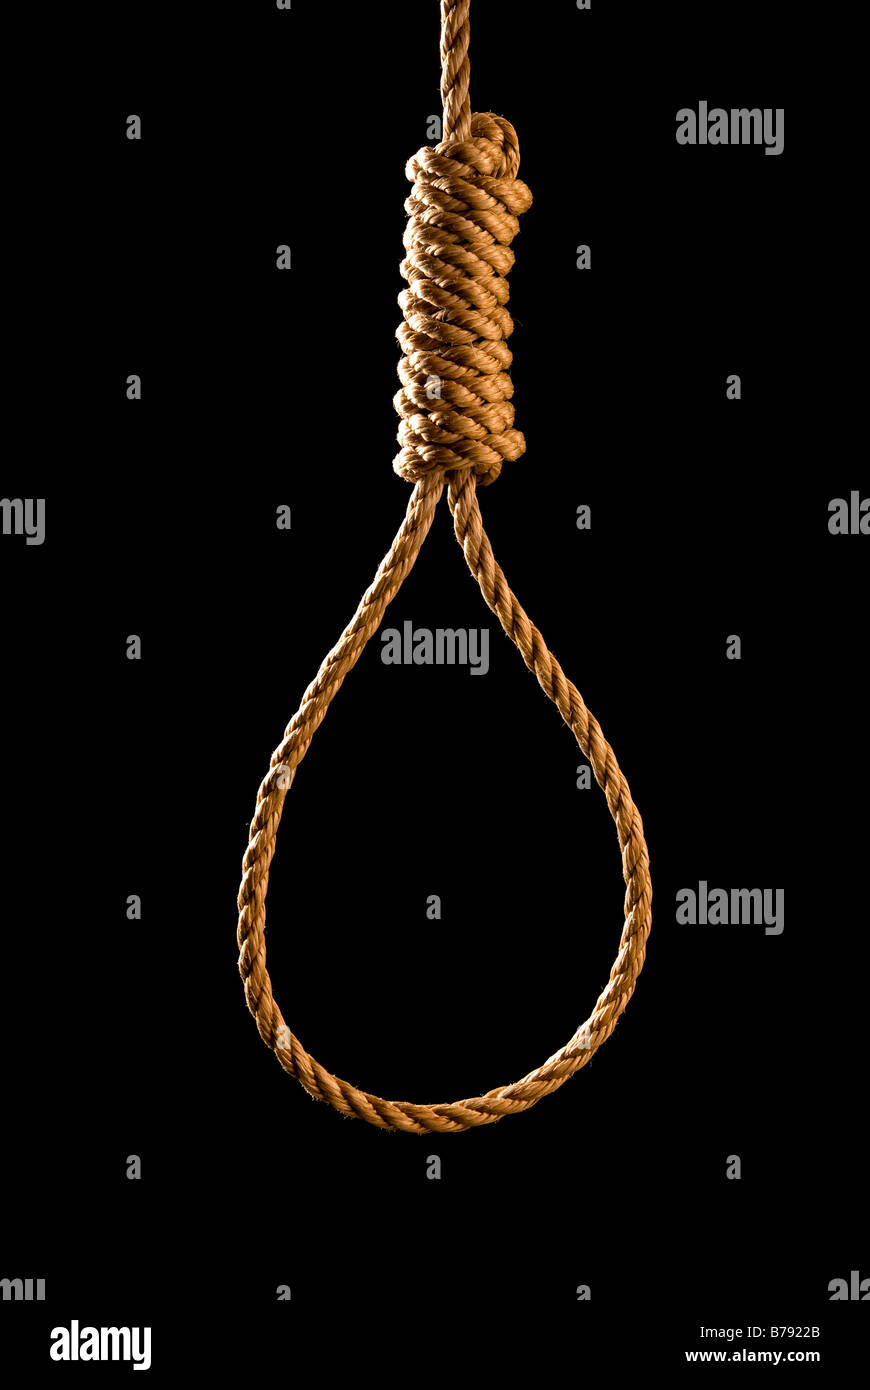 Hanging Execution Stock Photos Amp Hanging Execution Stock